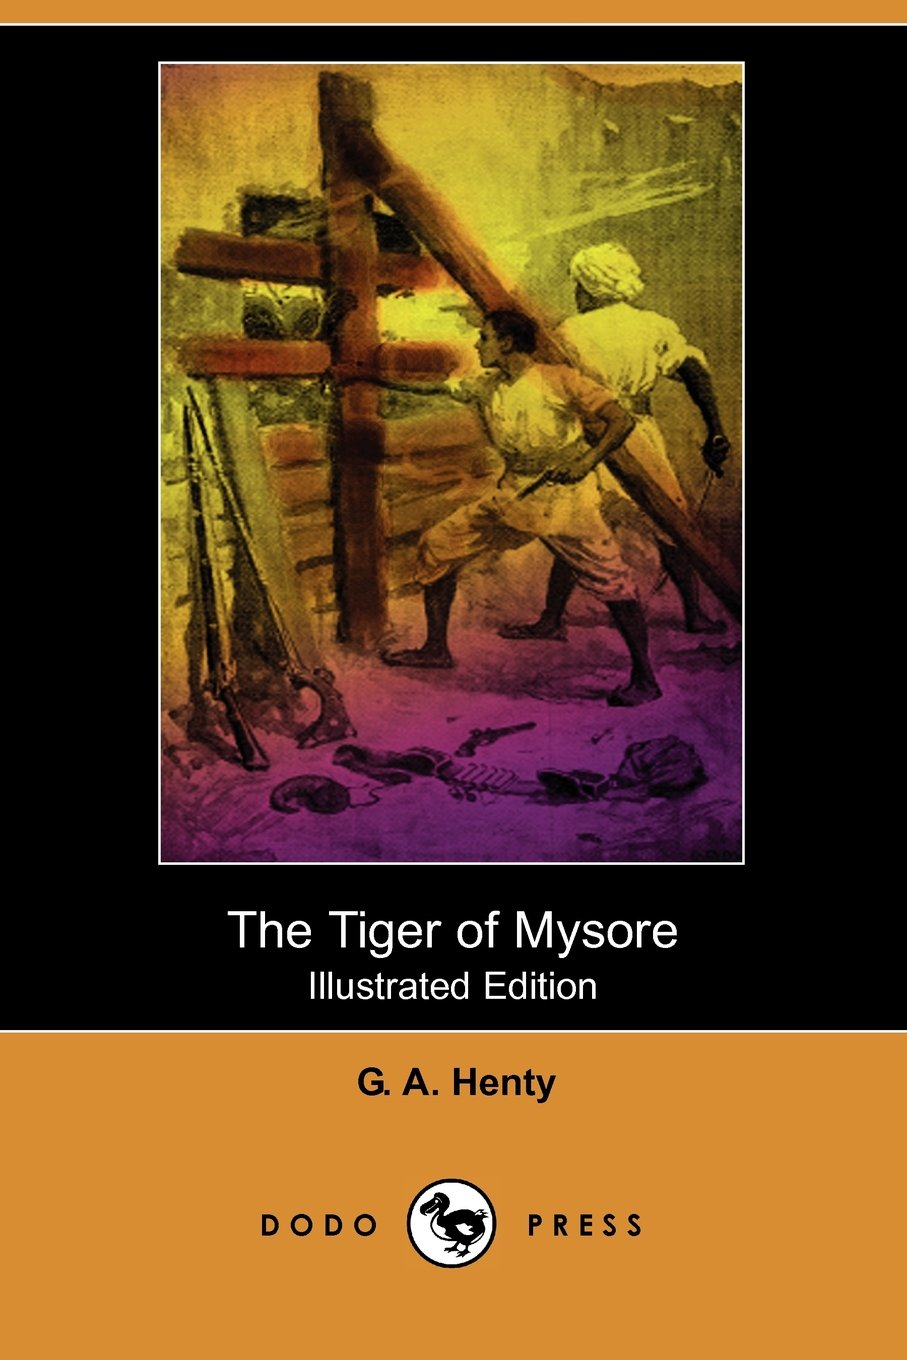 Download The Tiger of Mysore (Illustrated Edition) (Dodo Press) ebook